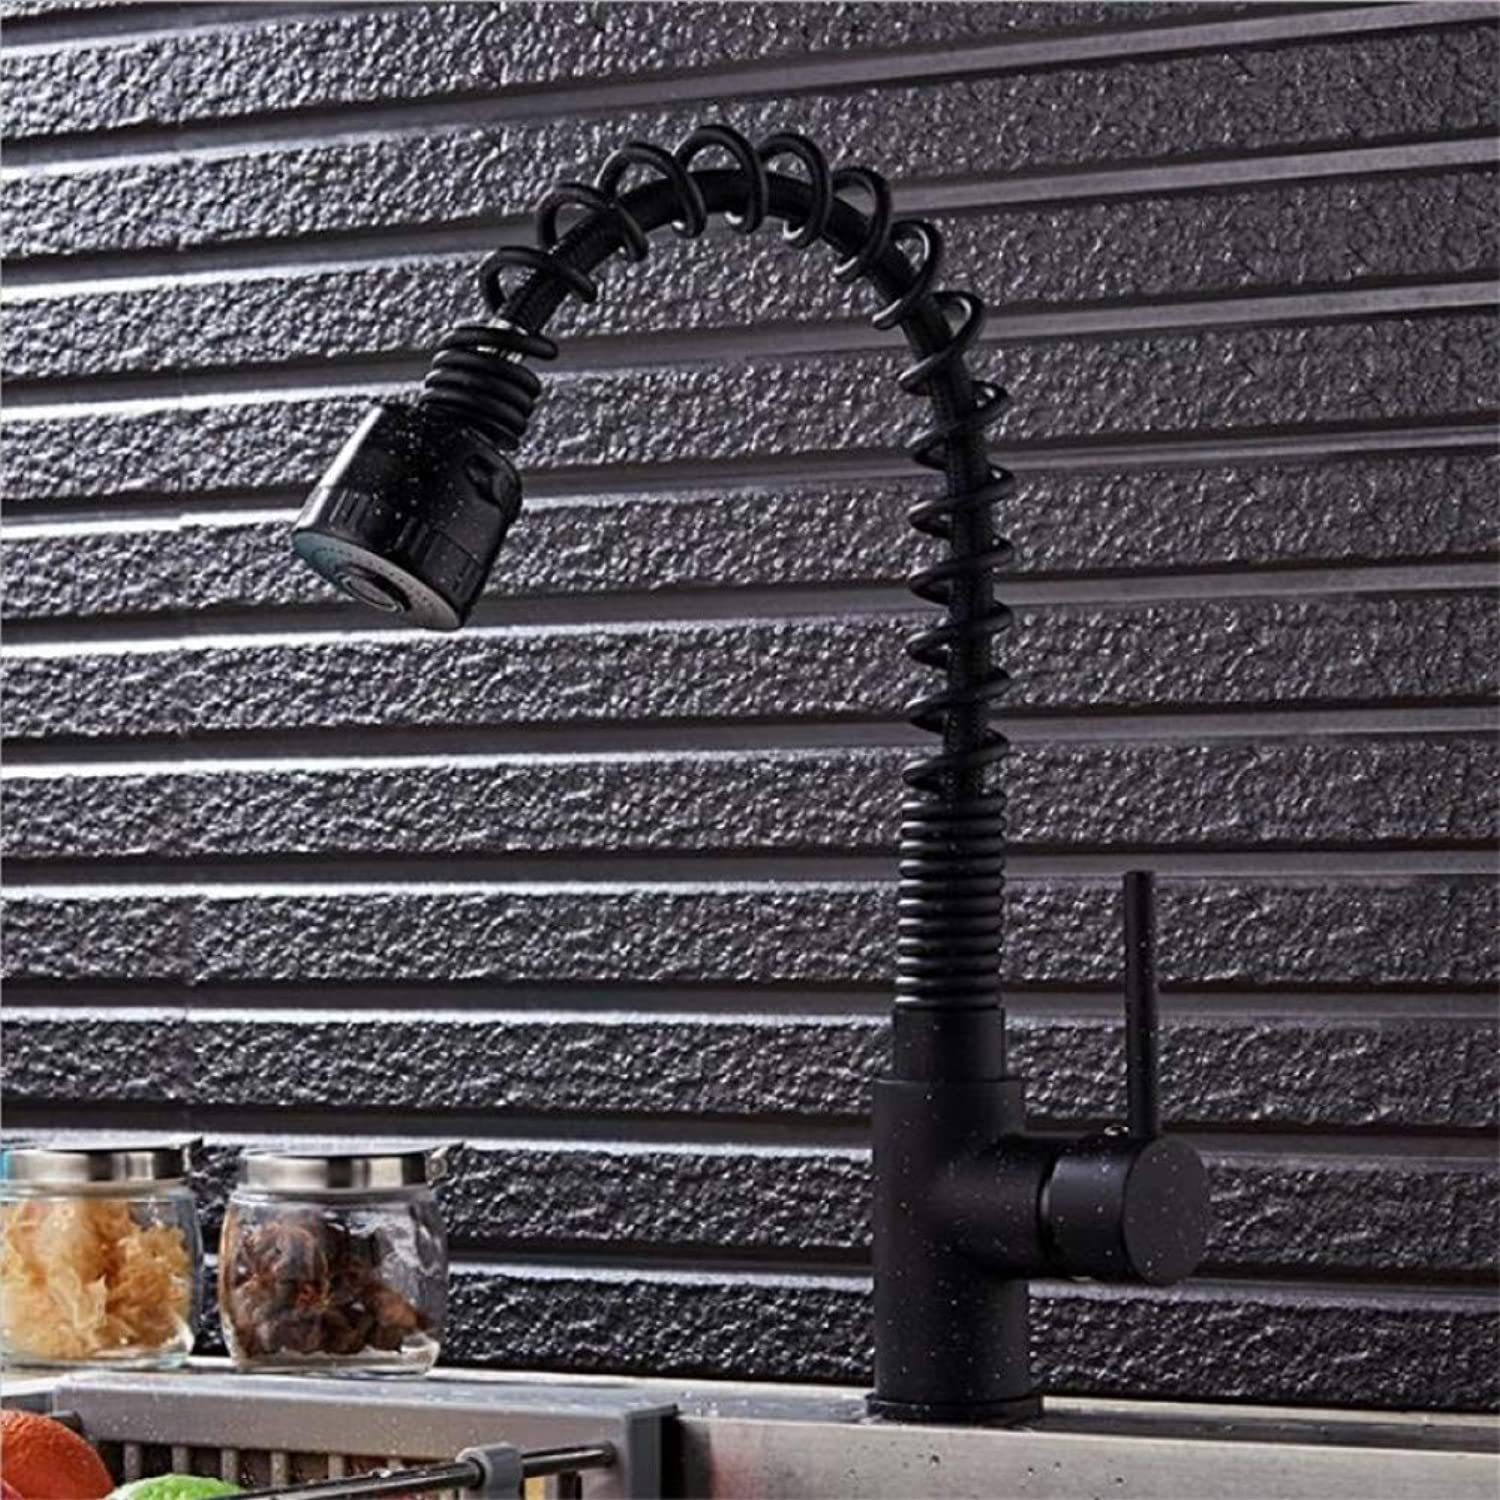 YHSGY Kitchen Taps Kitchen Pull Faucet Spring Sink Wash Basin Hot and Cold Faucet Tap Single Handle